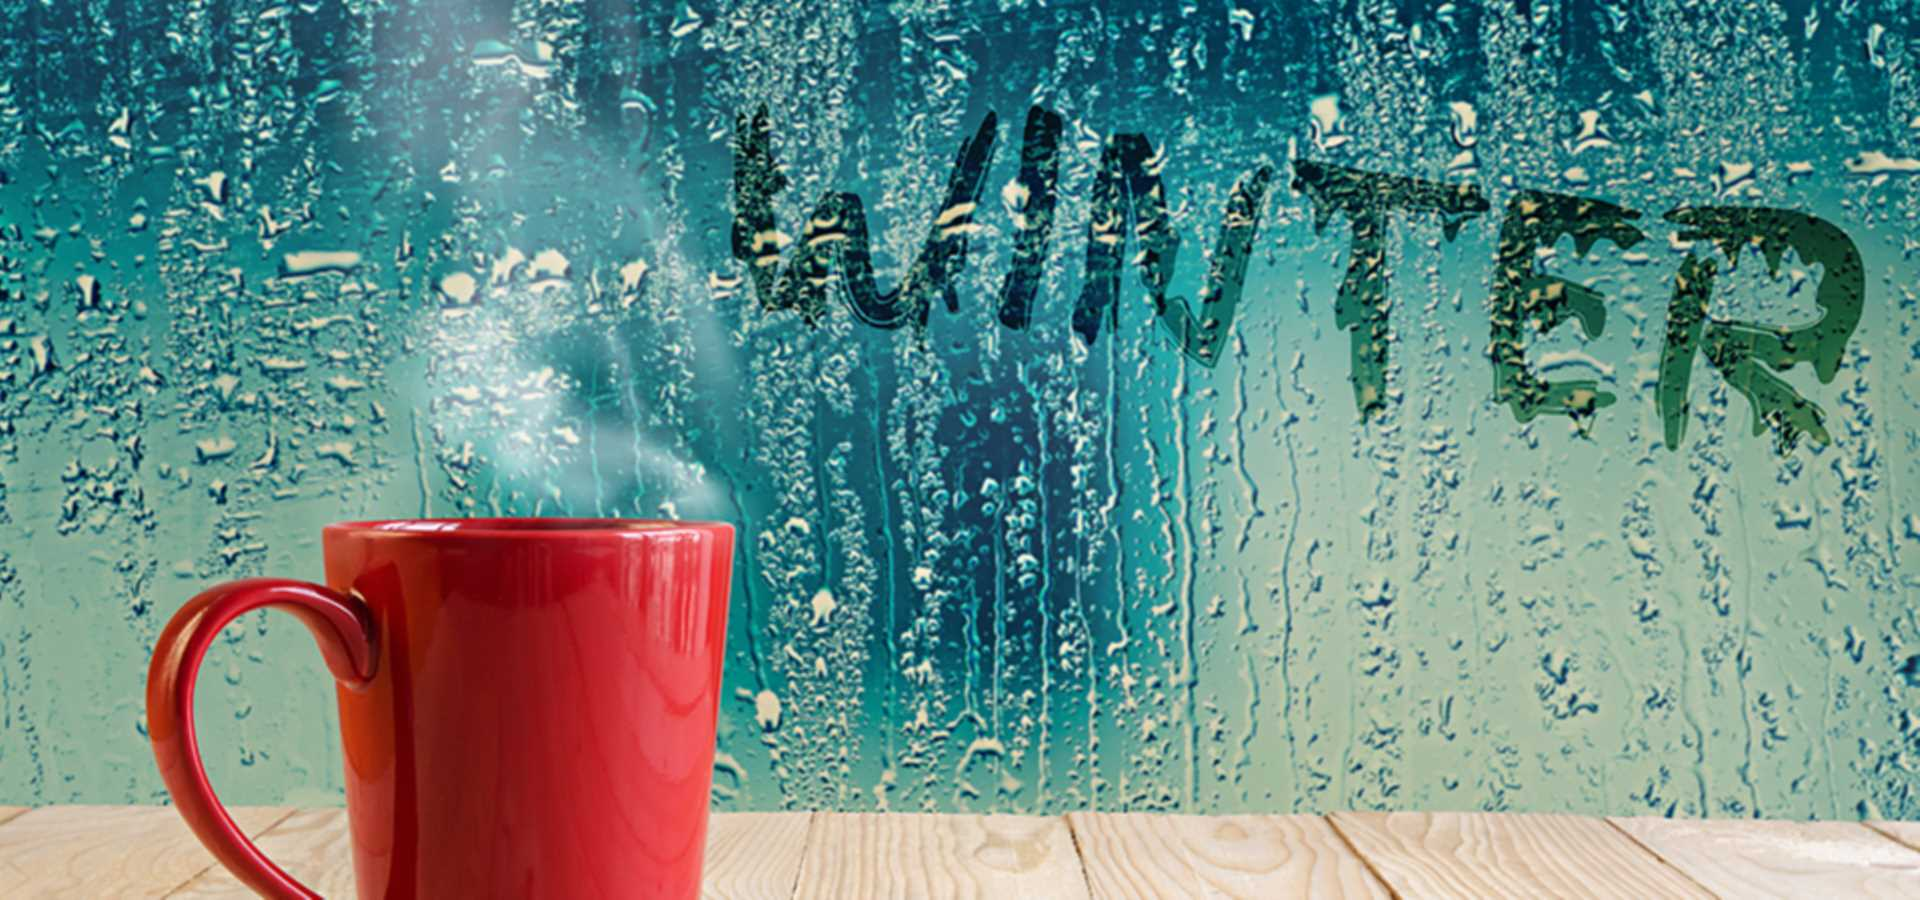 Landlords... How to Reduce Condensation?